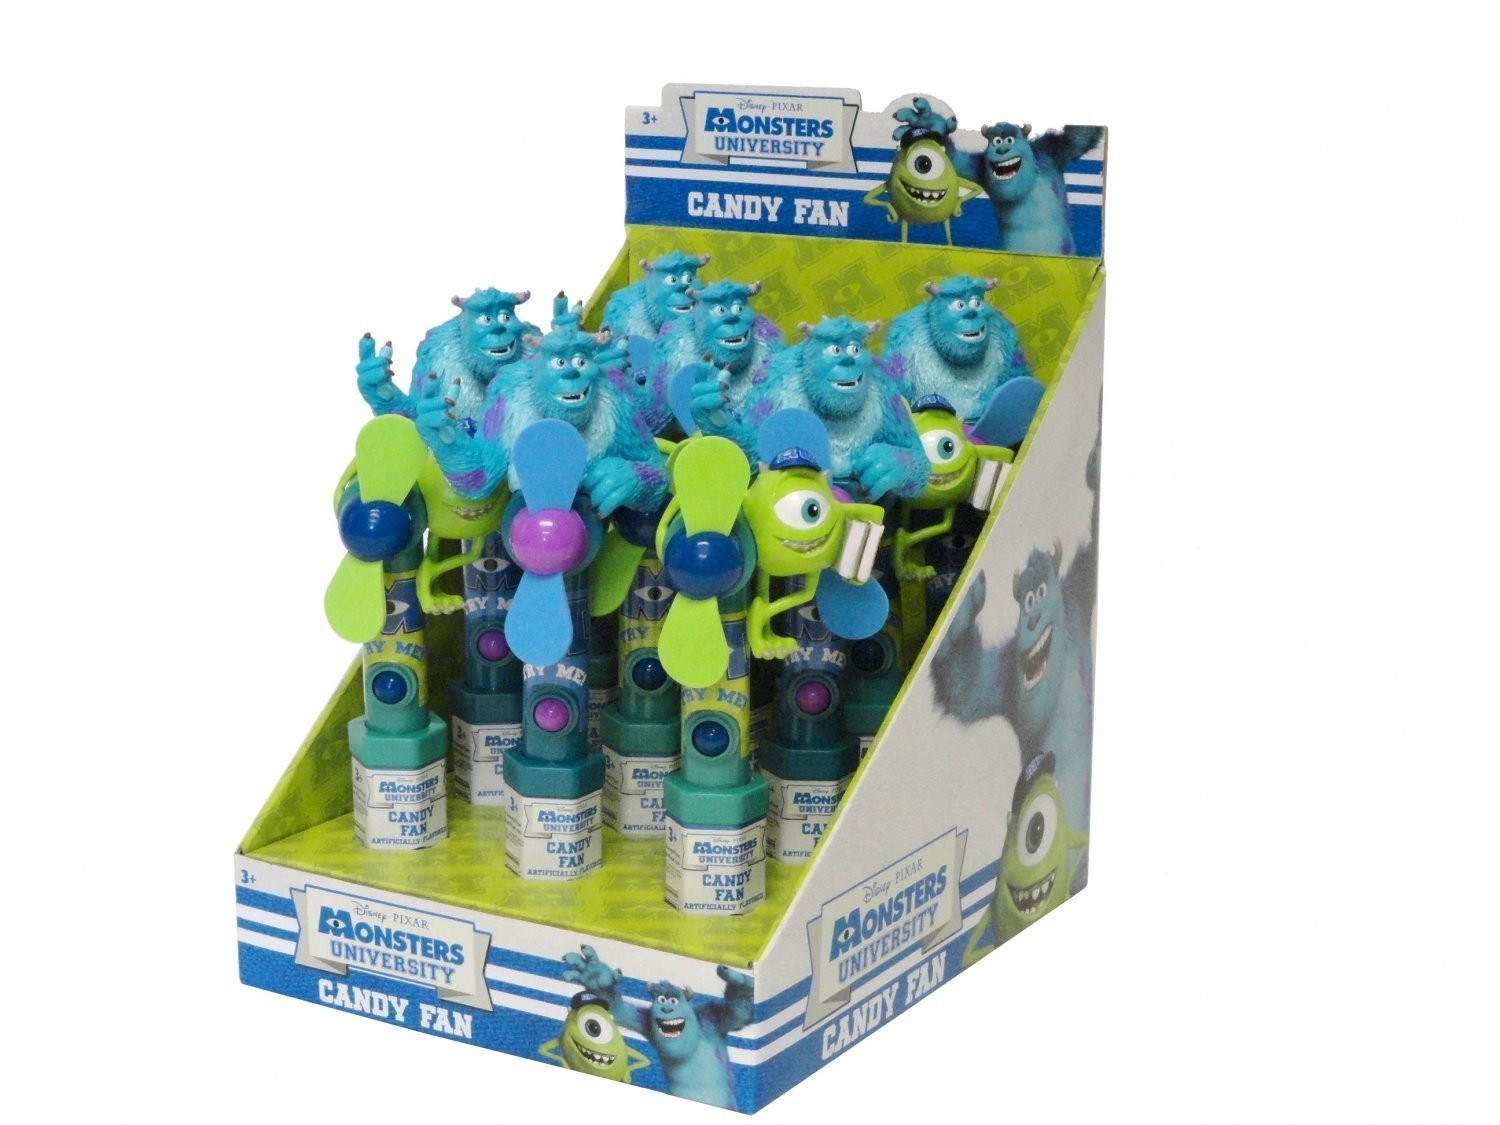 Disney ©Disney•Pixar Monsters University Character Fan with candy